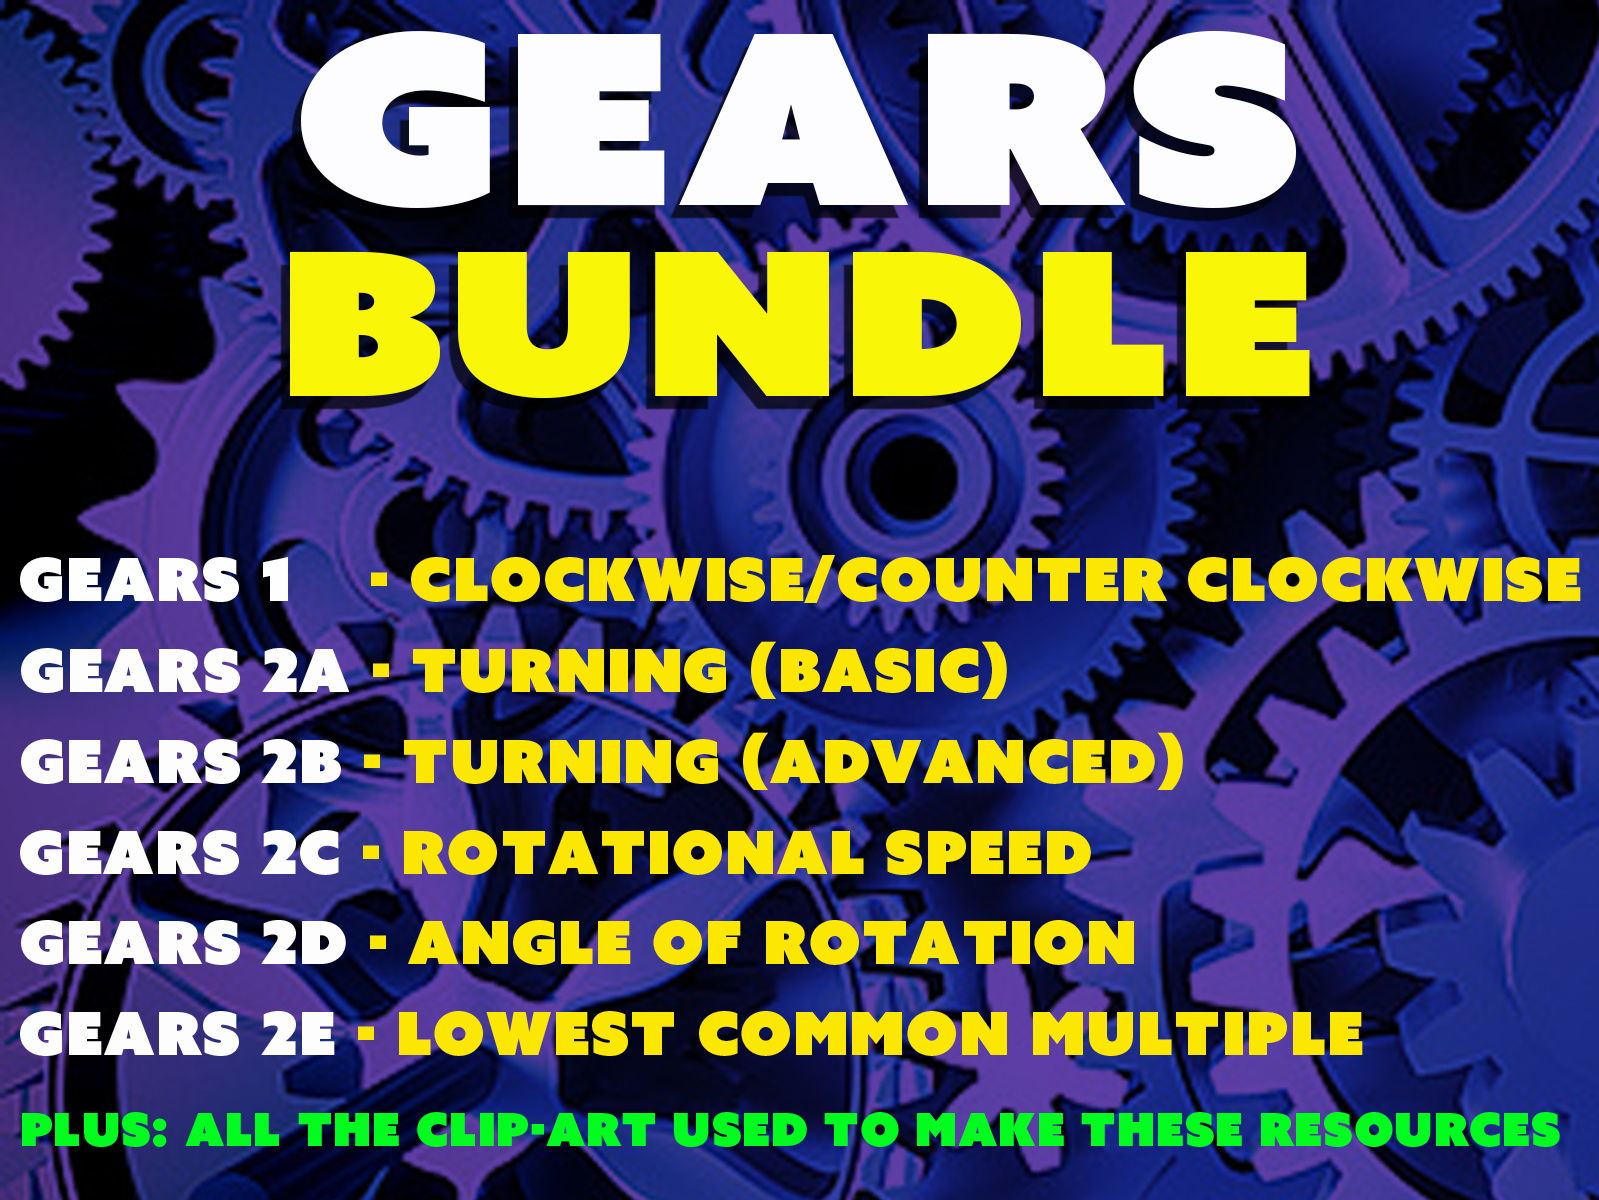 GEARS BUNDLE for use in MATHS or PHYSICS